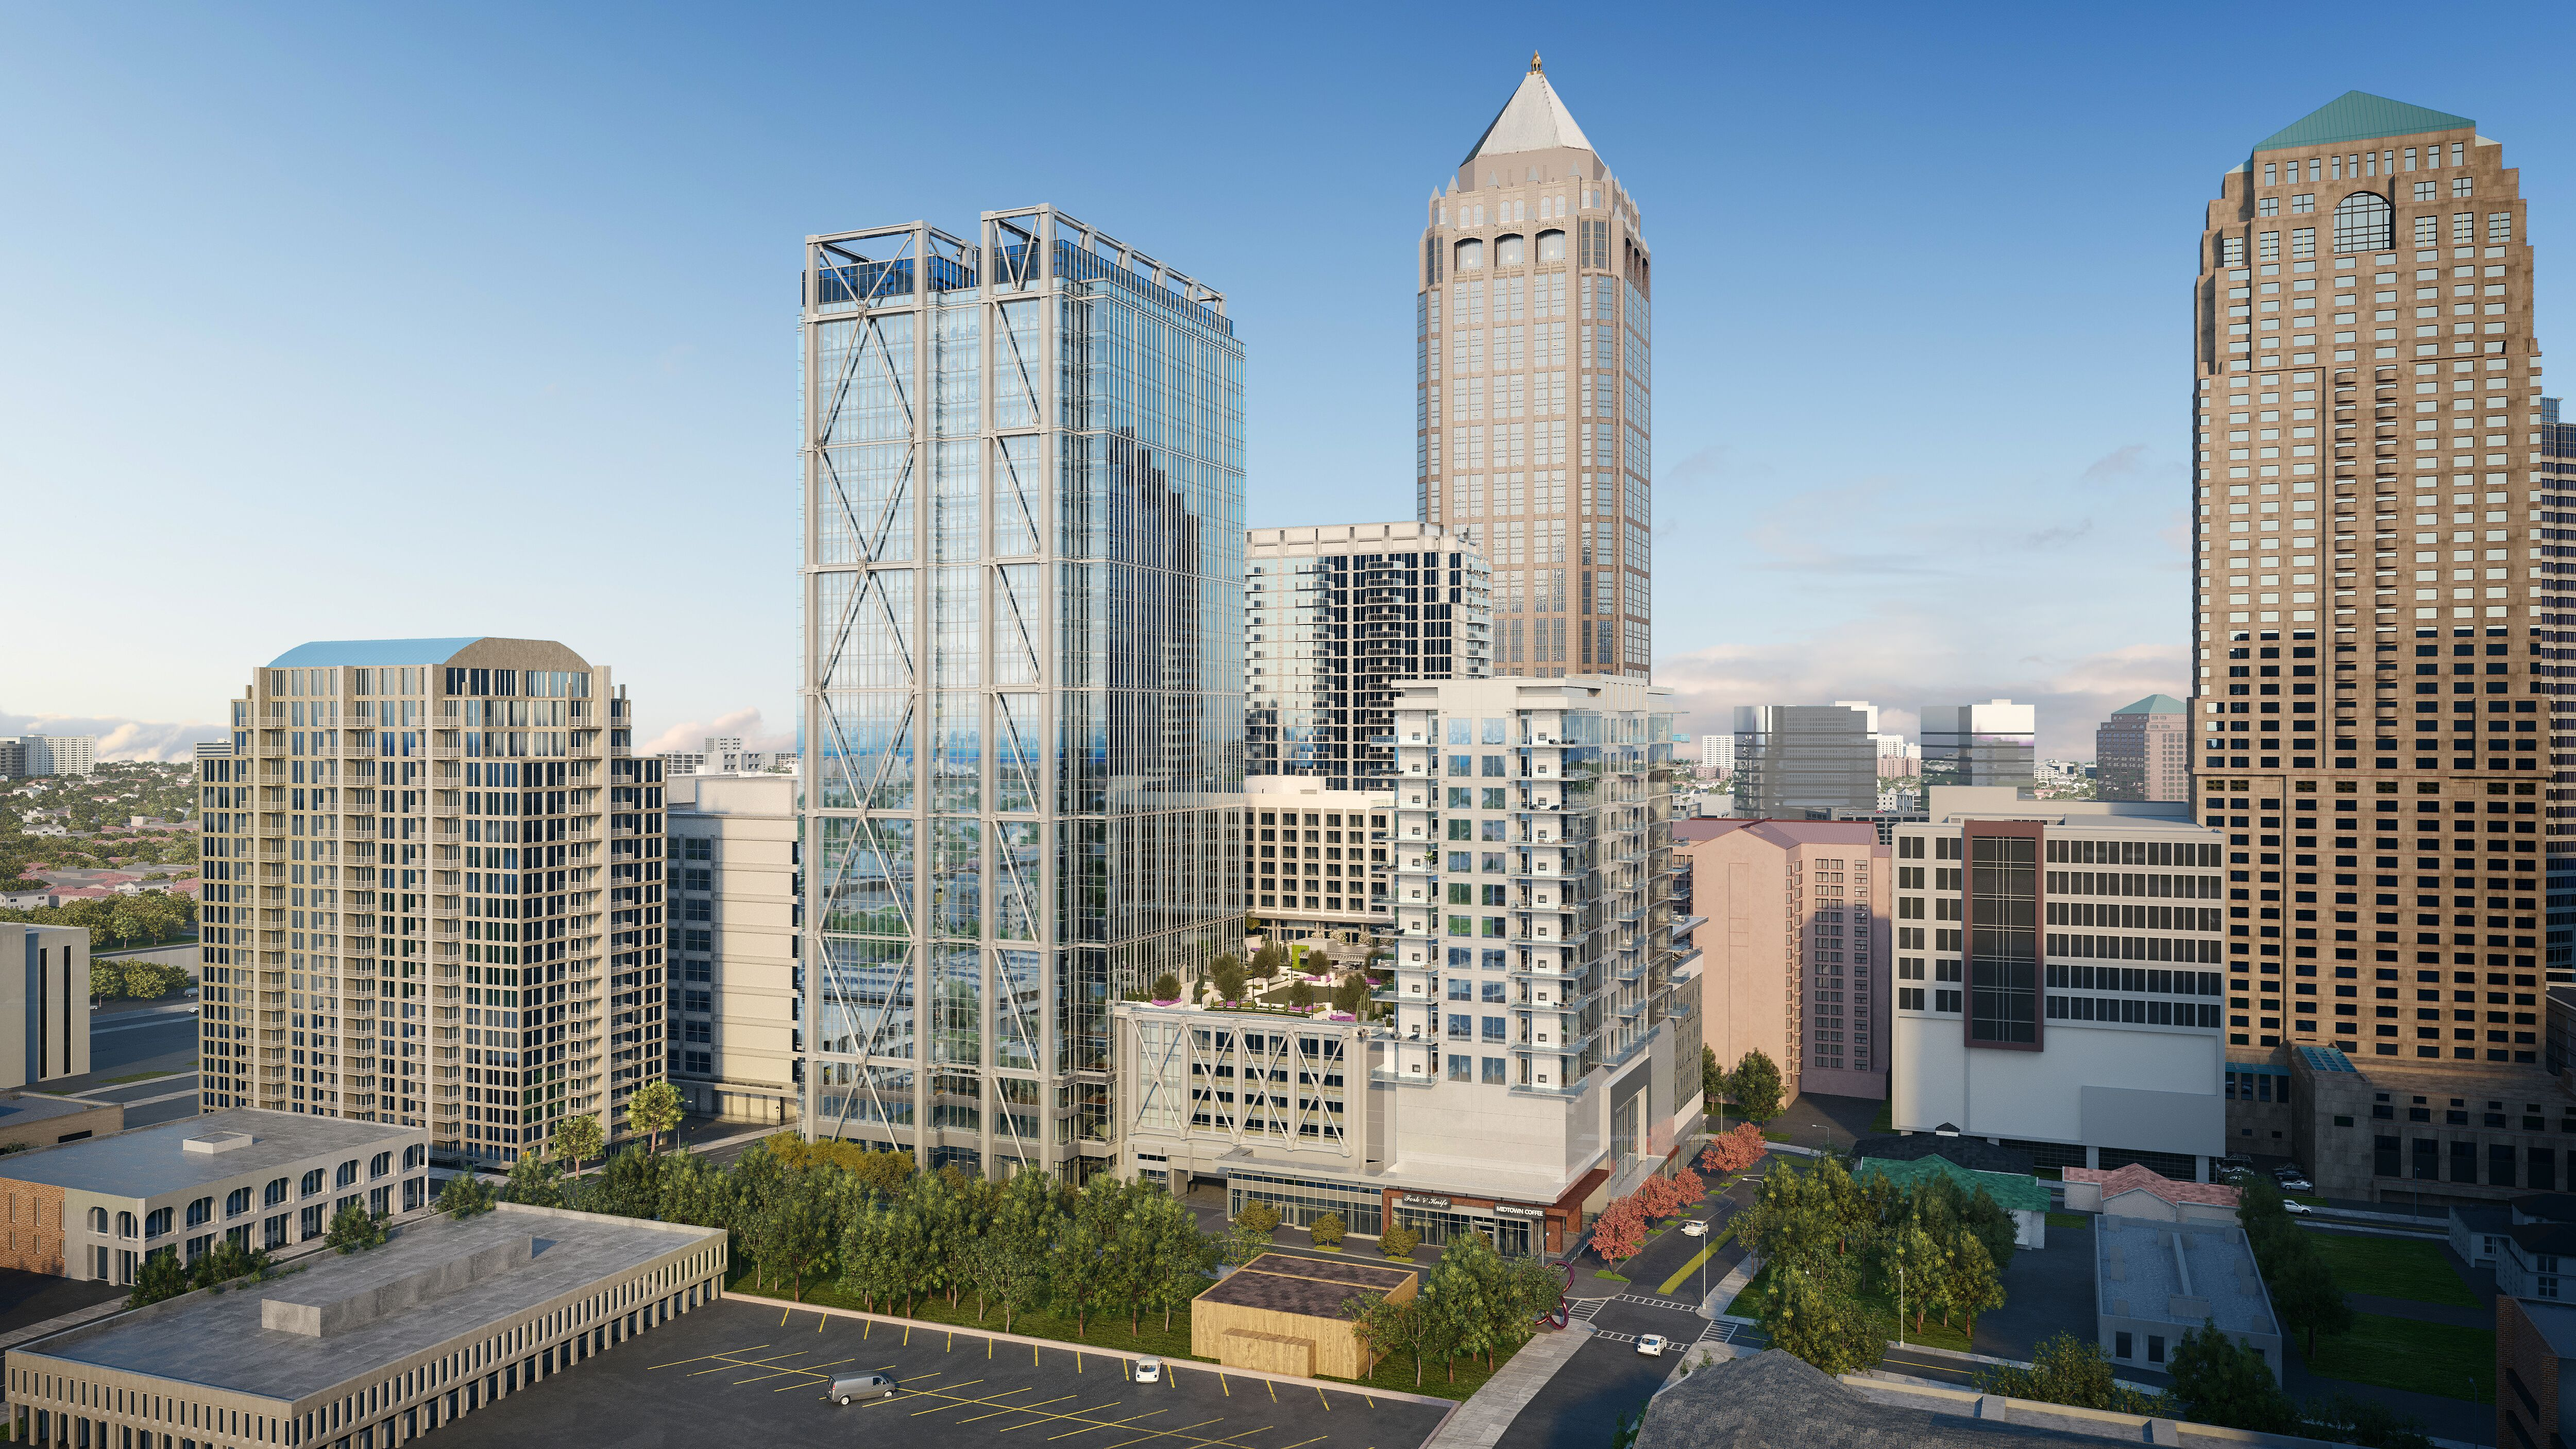 A rendering shows new towers jutting up in front of the Midtown skyline.